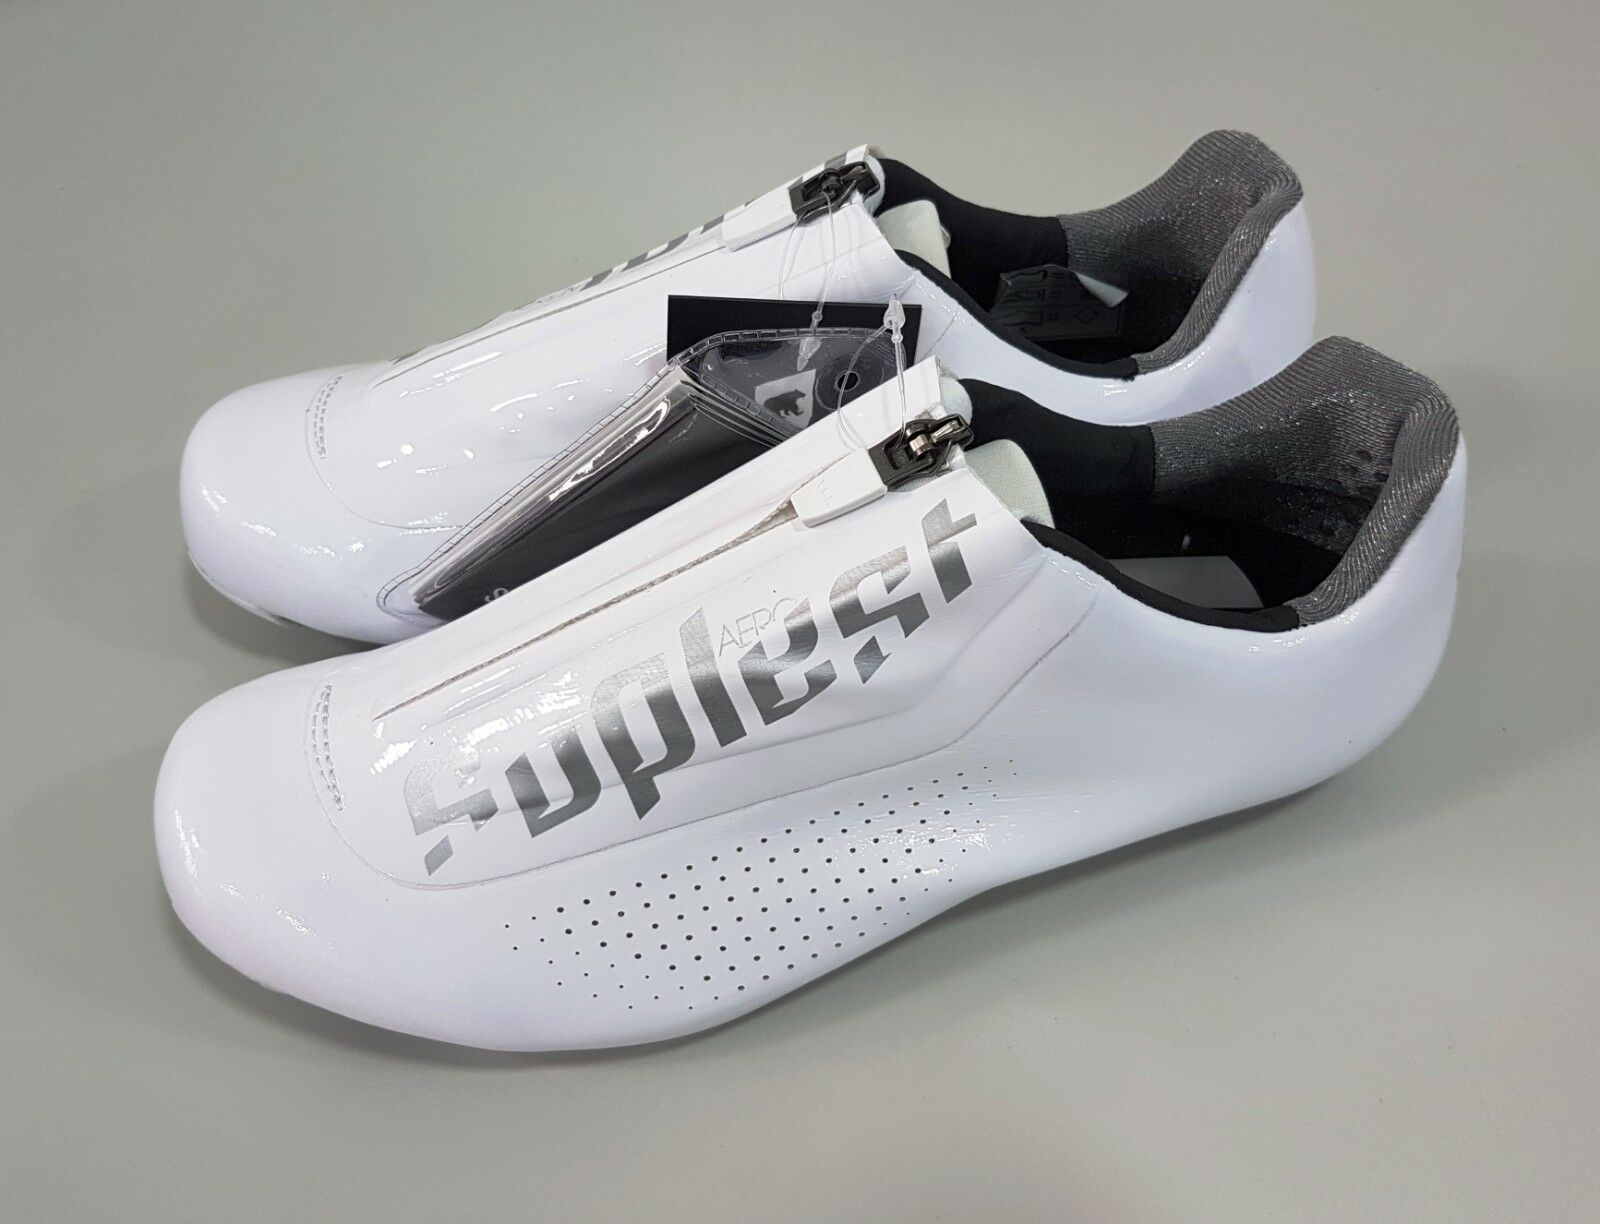 Suplest  Aero Carbon Road Bike Cycling Road shoes White Size 42.5  discount low price